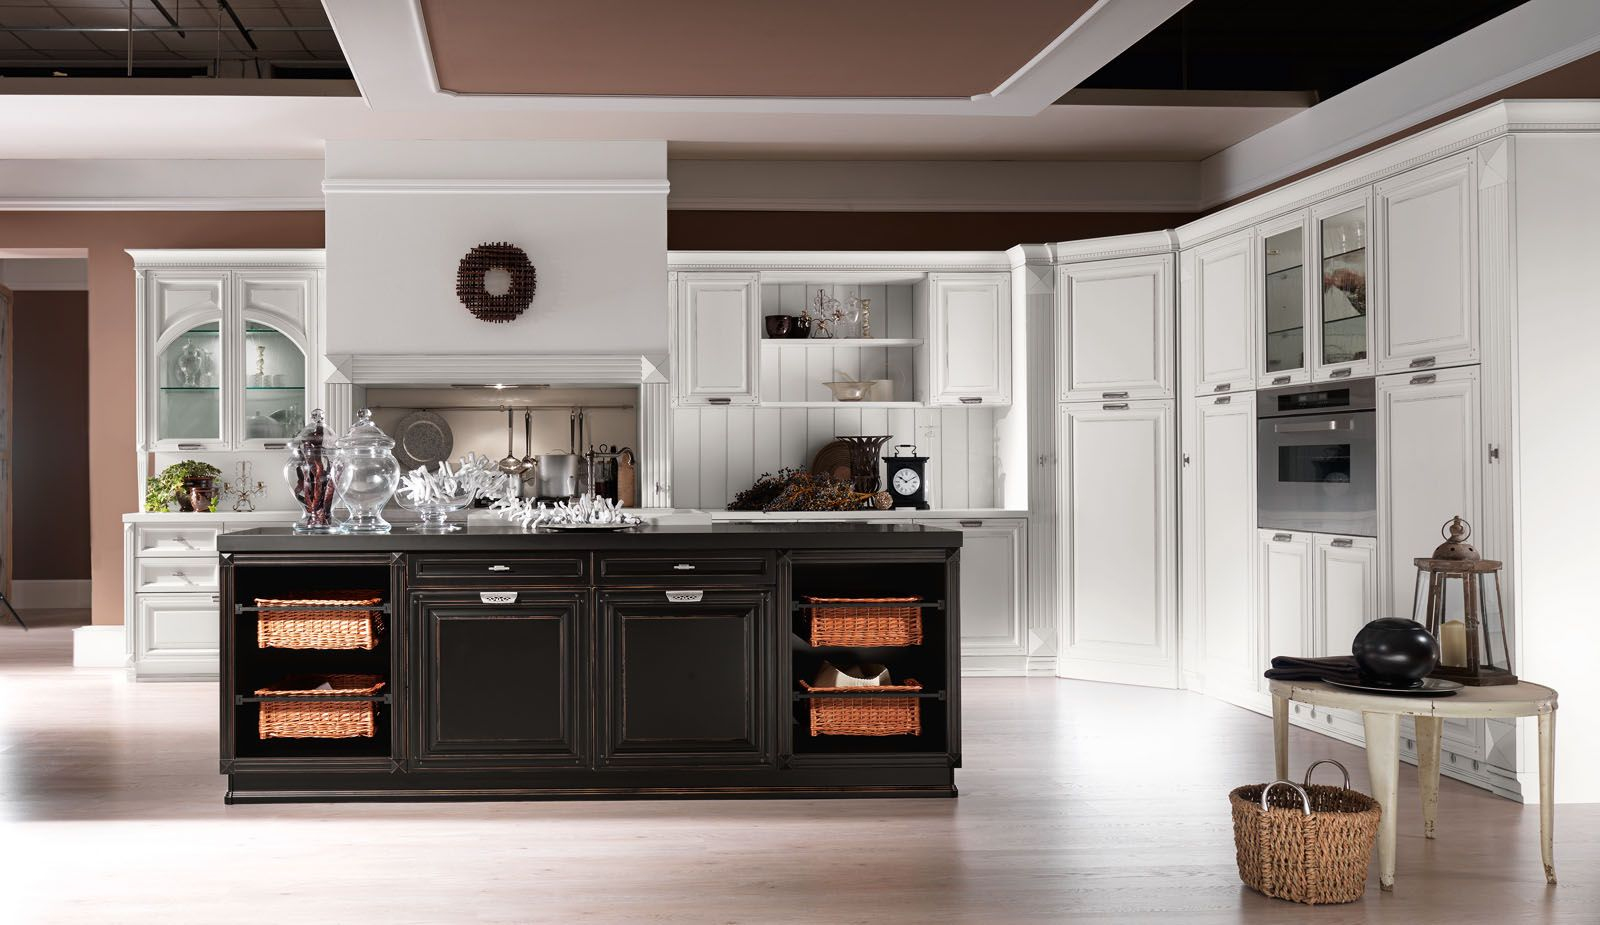 KITCHENS - Kitchen PEGASO SeriesFurniture from Italy